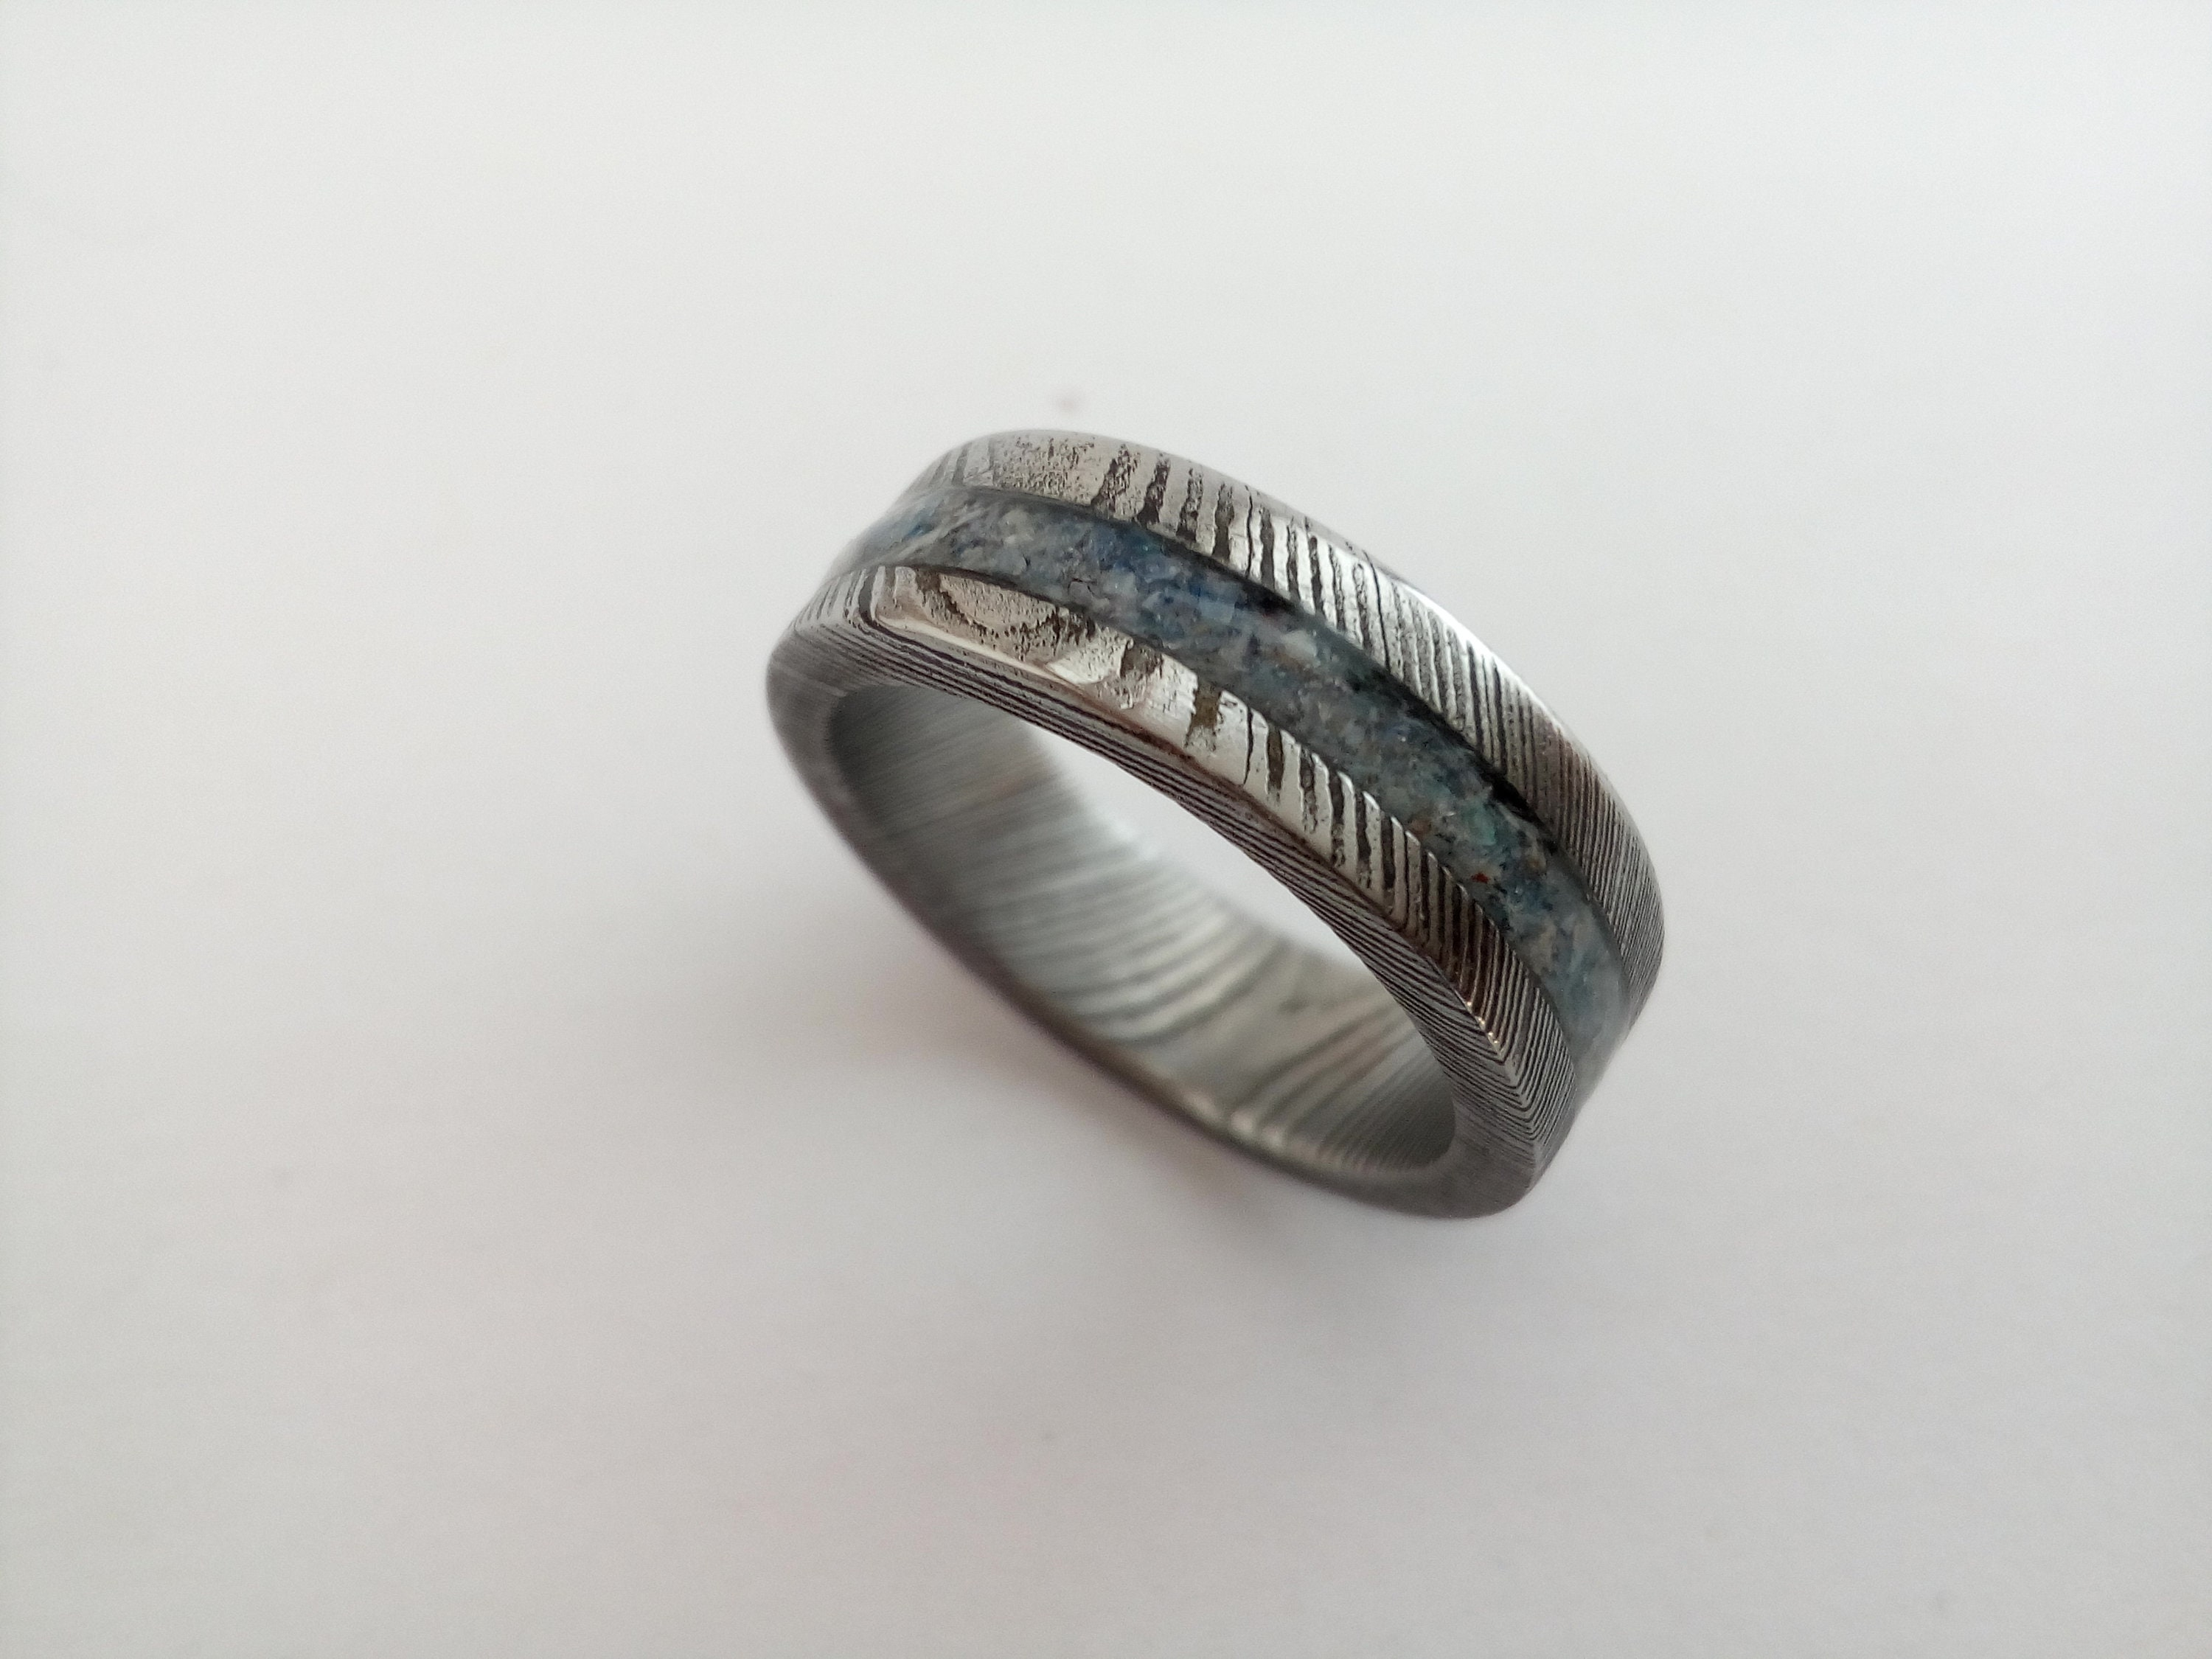 Romantic Wedding or Engagement Ring with Pearl Women by KREDUM |Damascus Steel Rings For Women